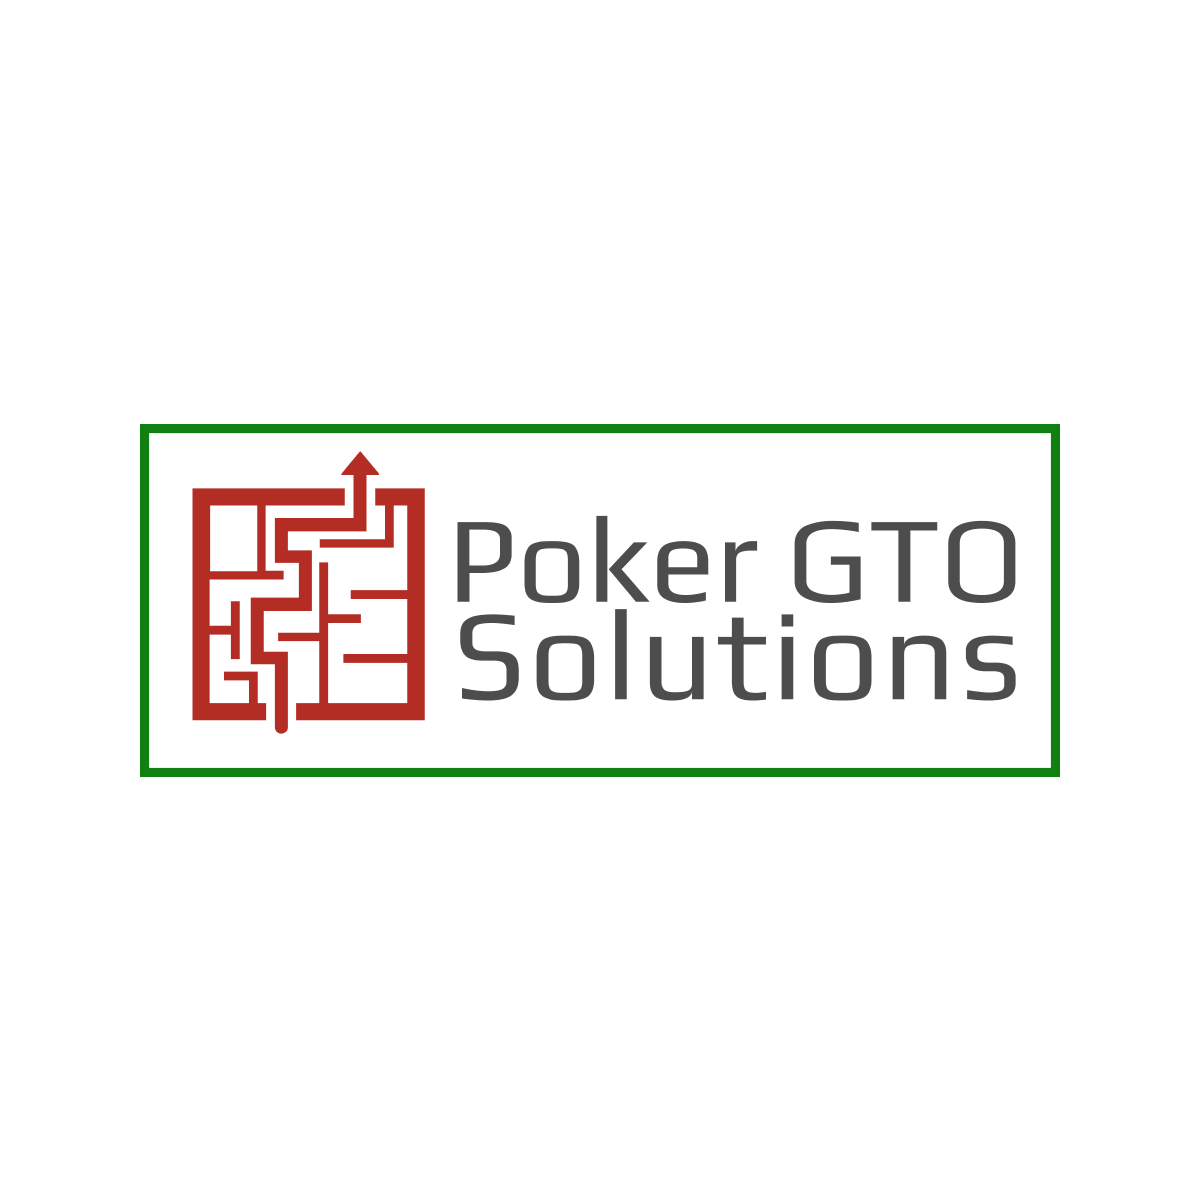 Preflop GTO Solutions – PokerGTOSolutions